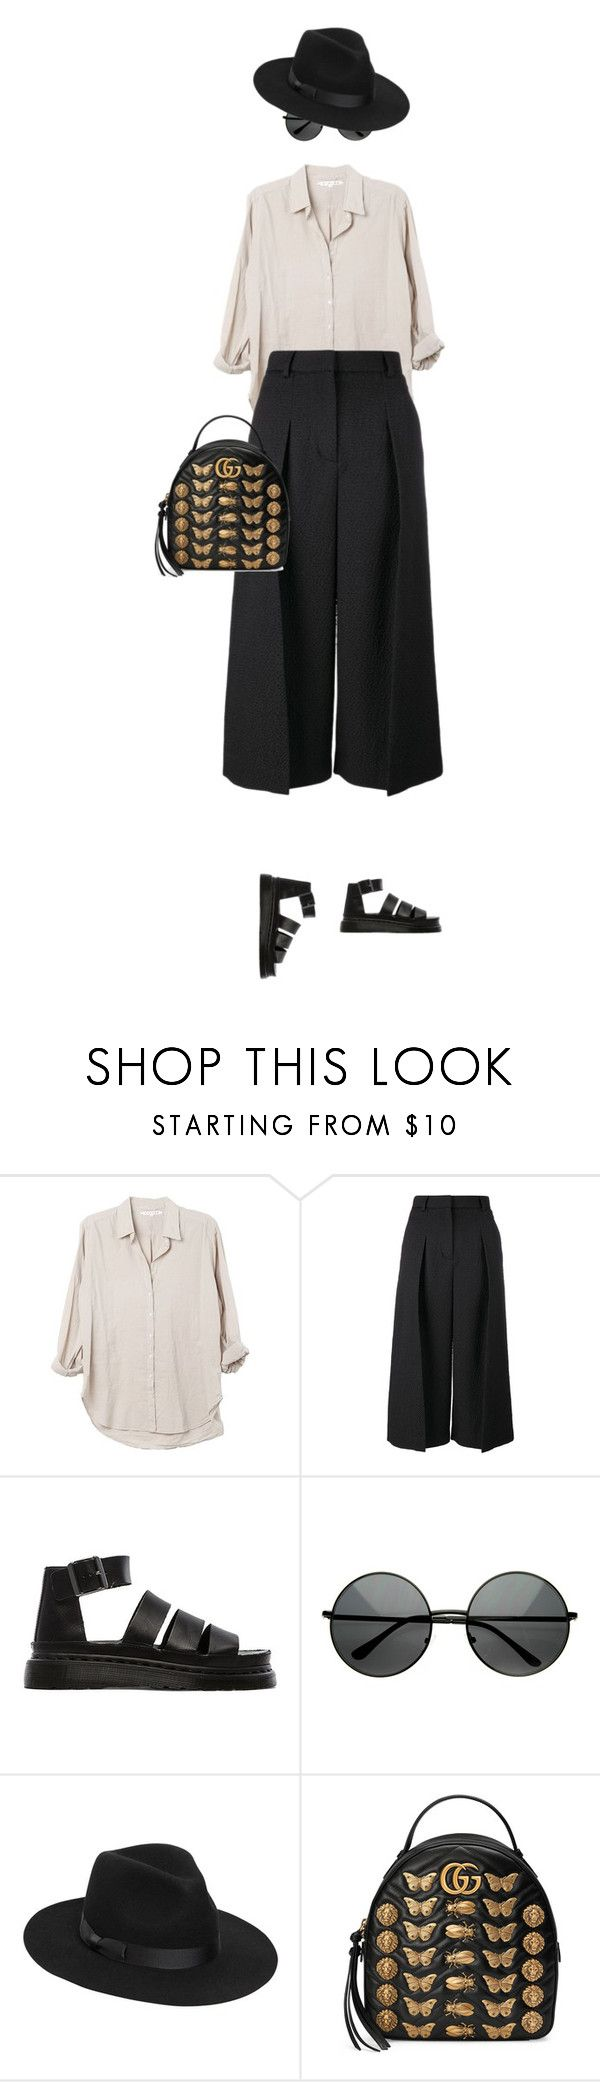 """""""eva 1157"""" by evava-c on Polyvore featuring Xirena, Erdem, Dr. Martens, Lack of Color and Gucci"""